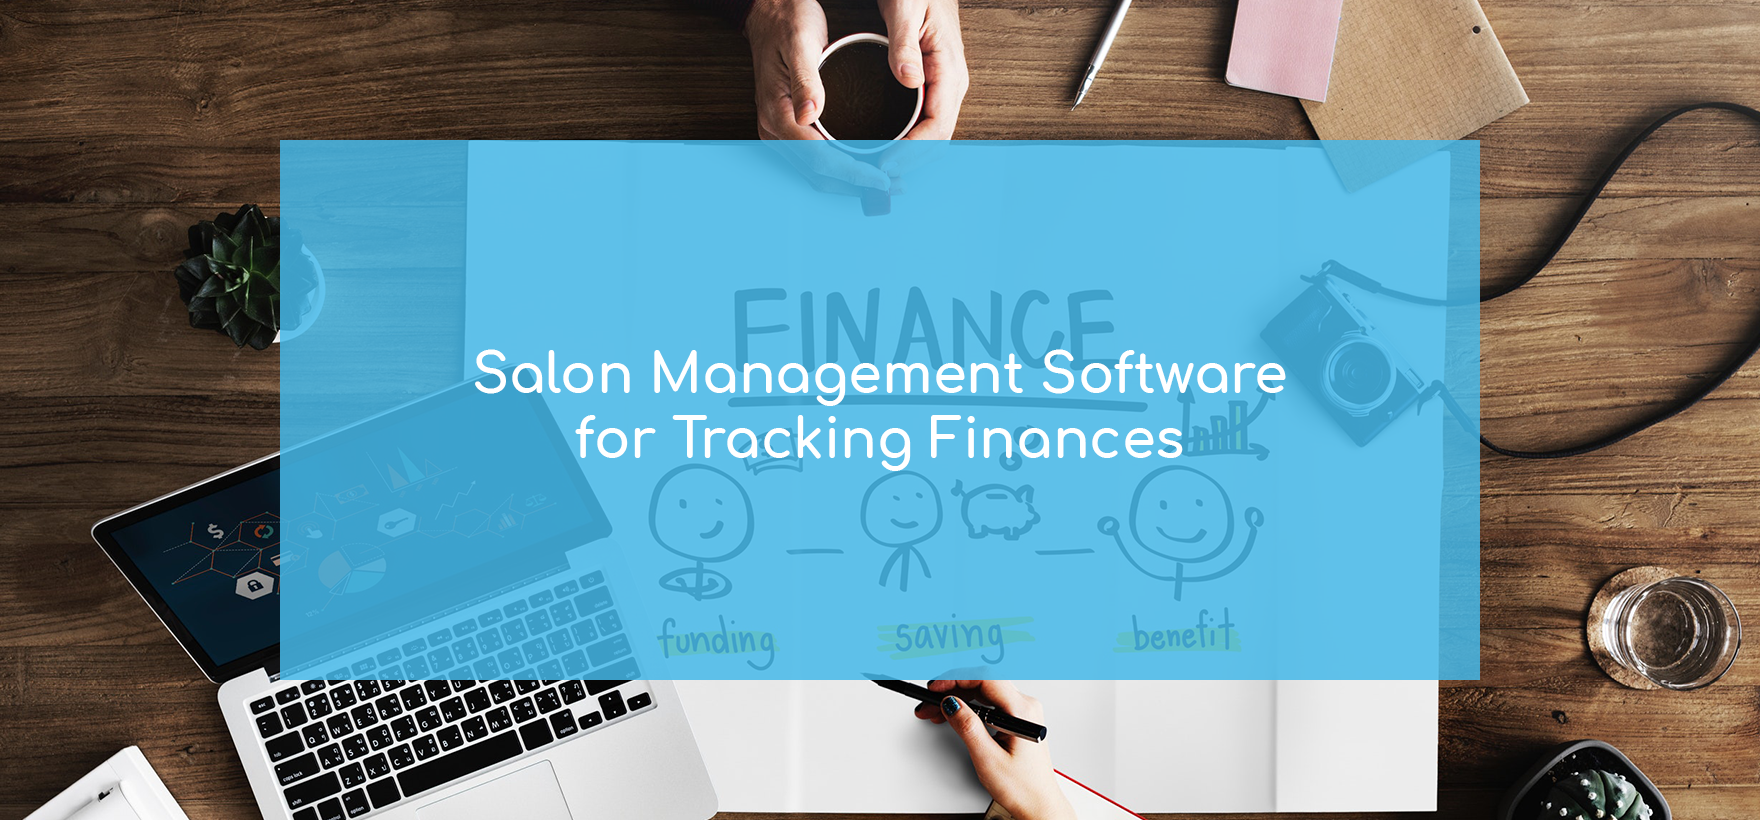 Smarter Beauty Business Accounting with Salon Management Software